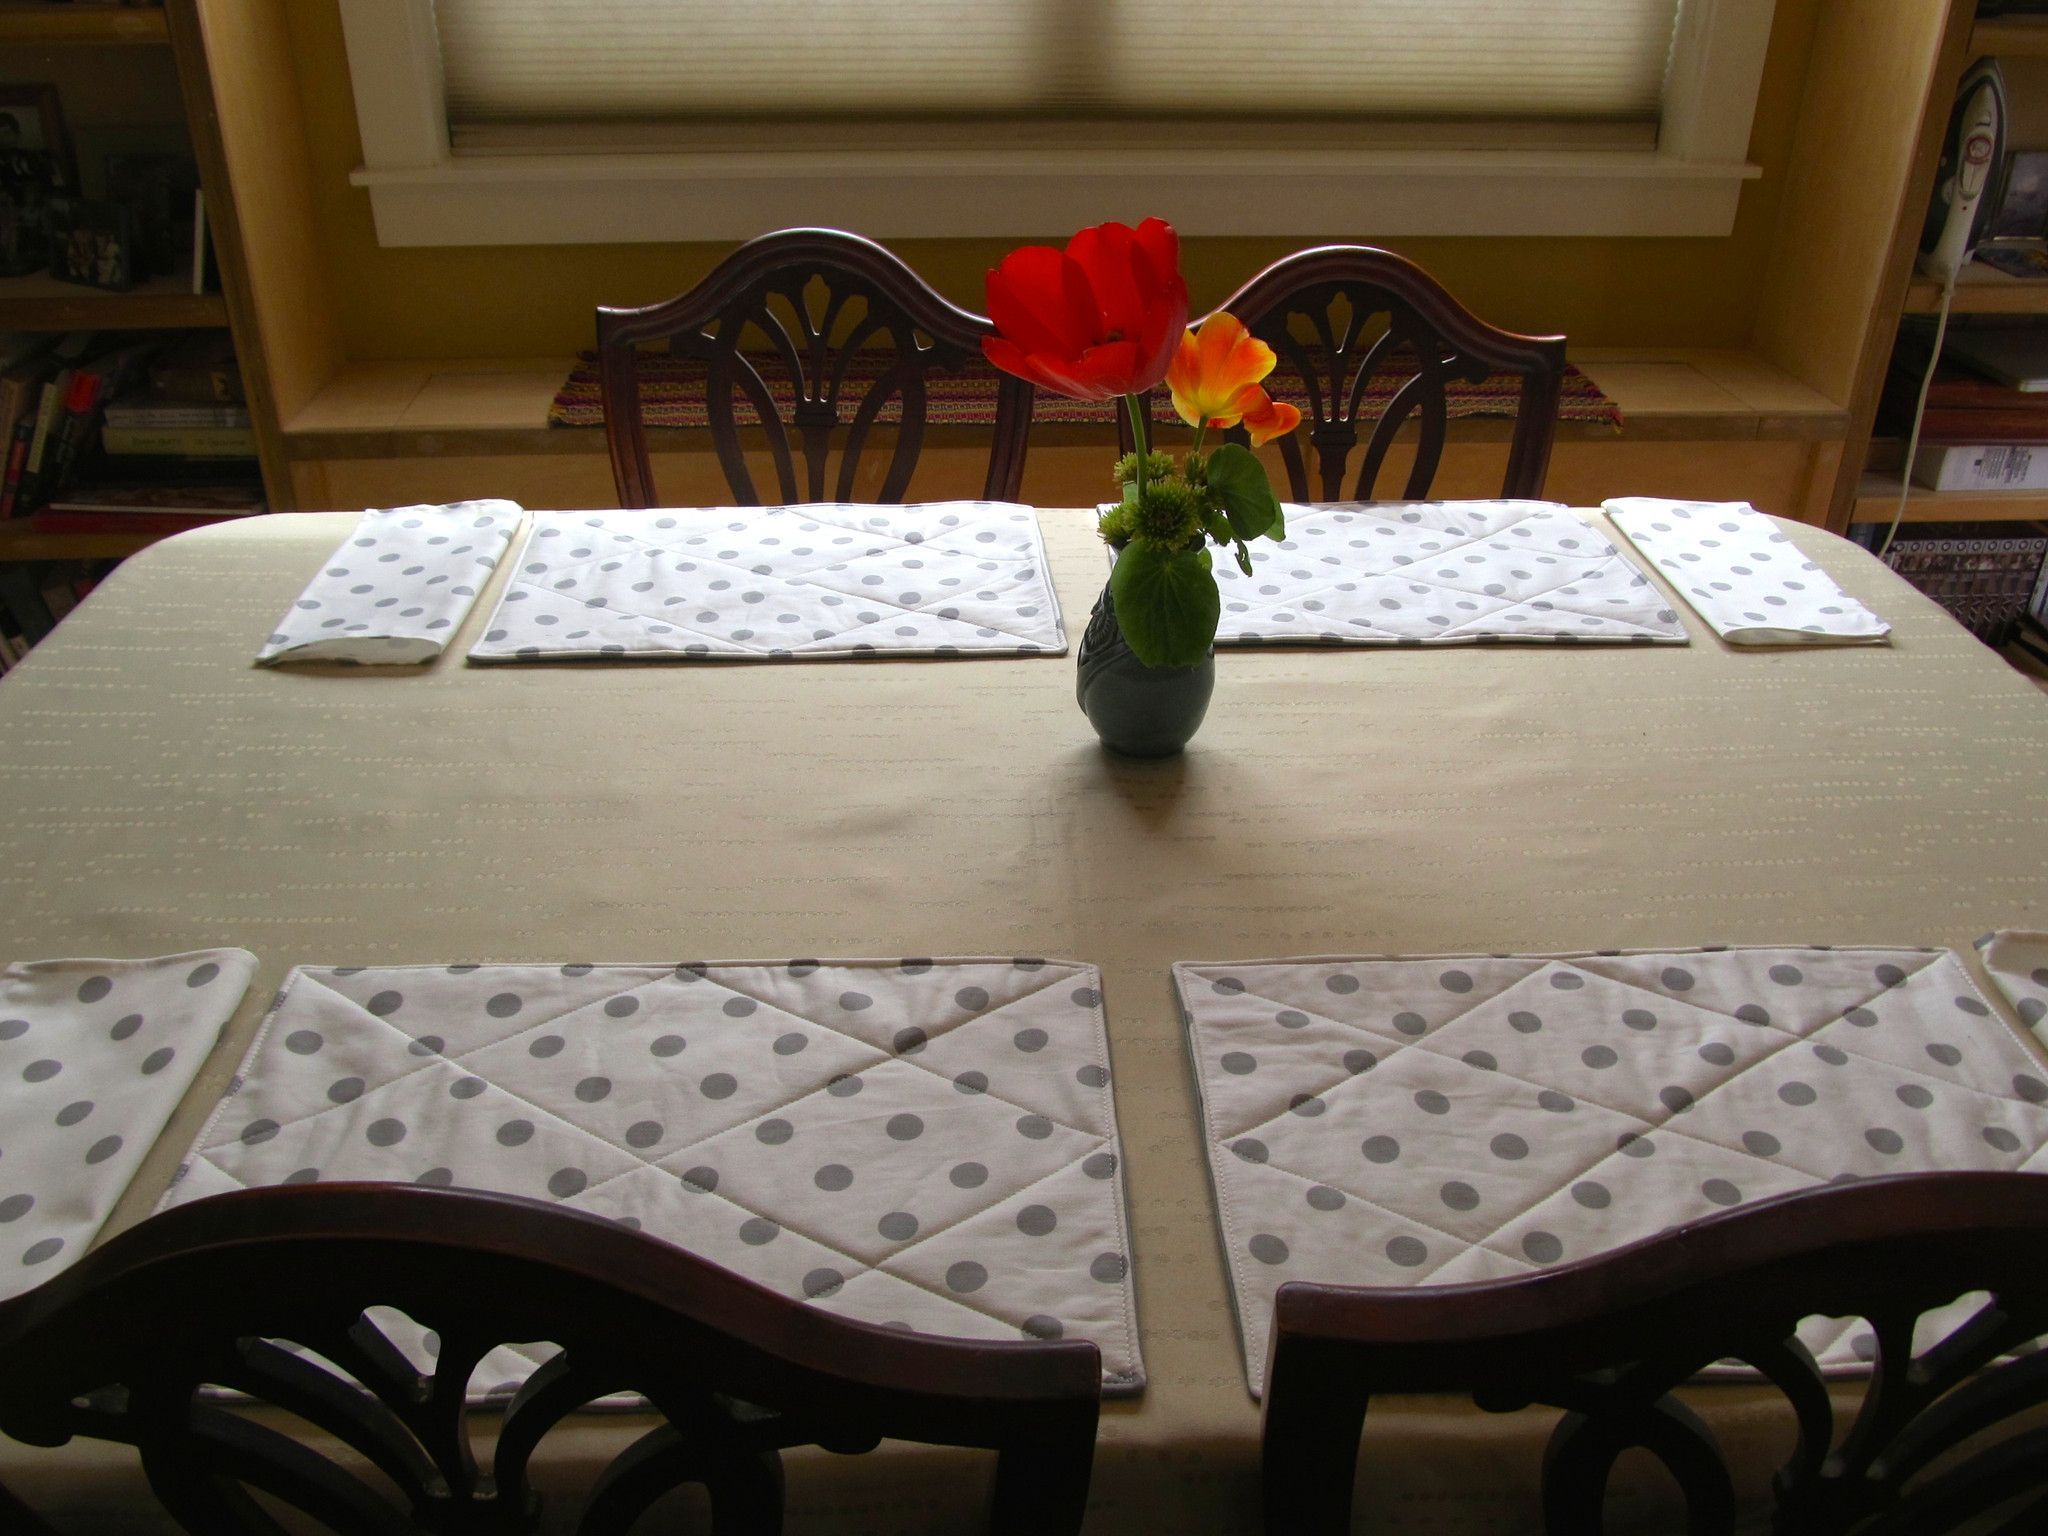 Placemat Set 19 White With Gray Polka Dots Up Cycled Fabric Placemat Sets Table Linens Handmade Table